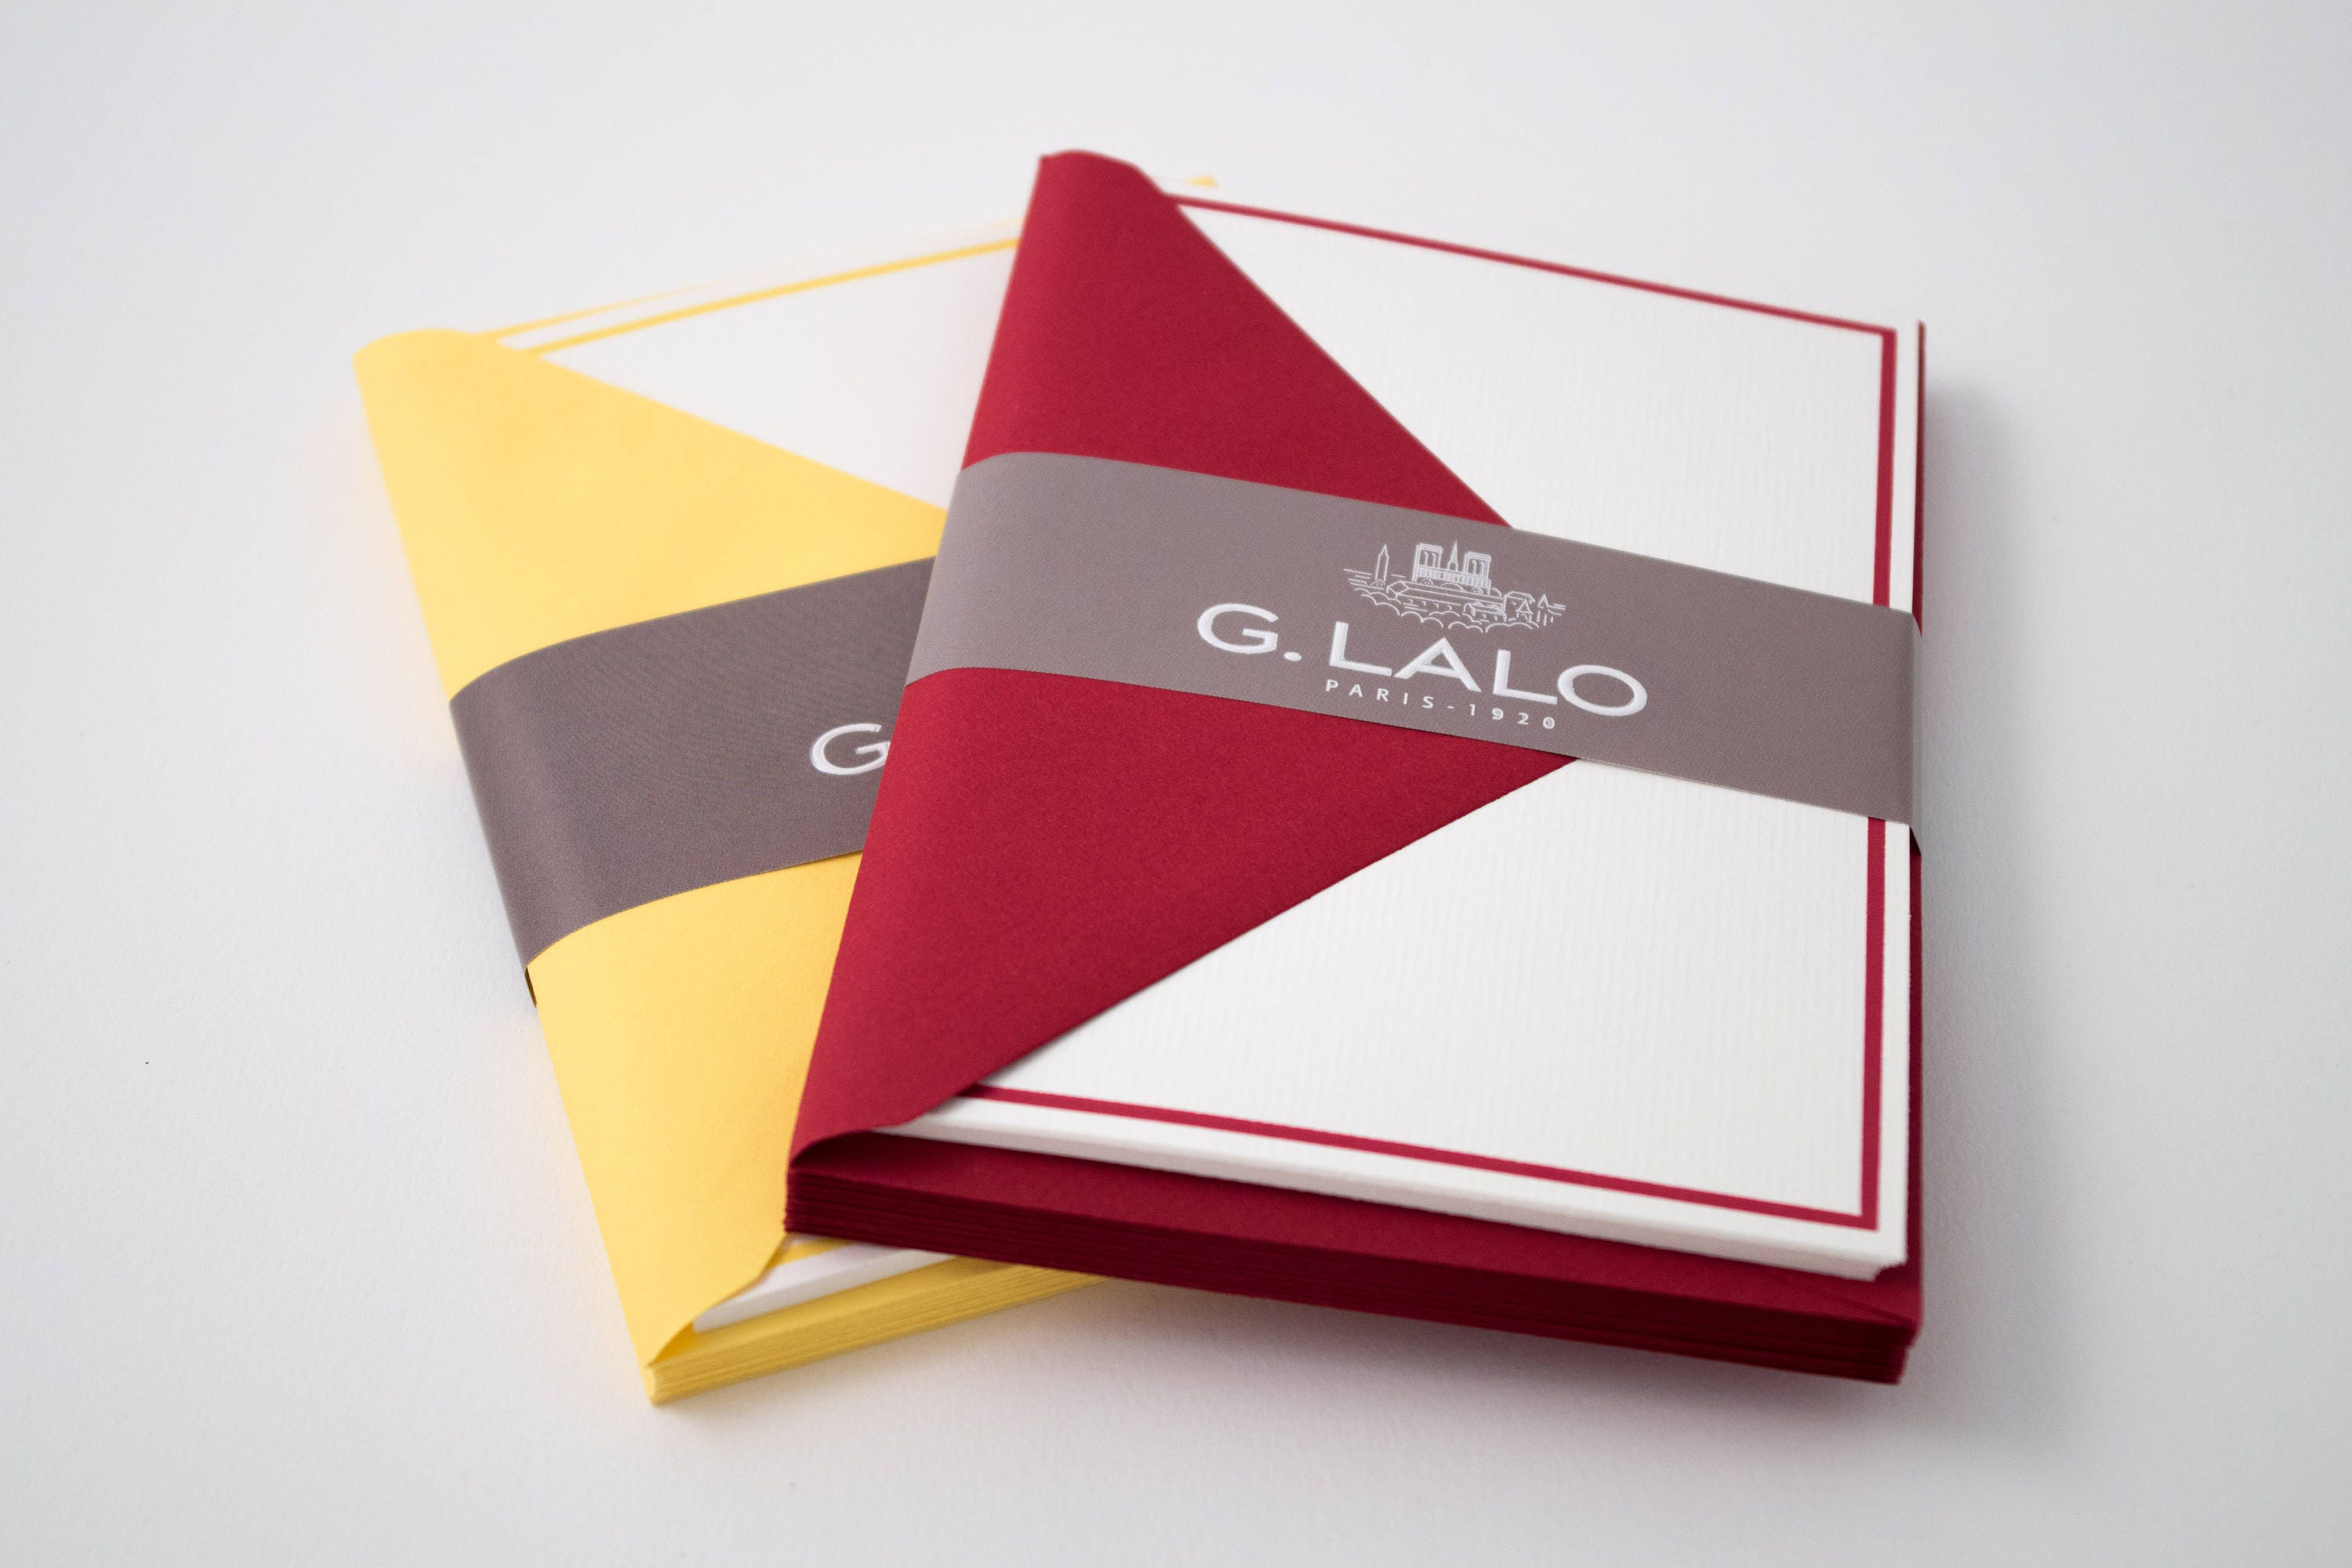 G. Lalo blank flat cards 4.25 x 6 with   Etsy